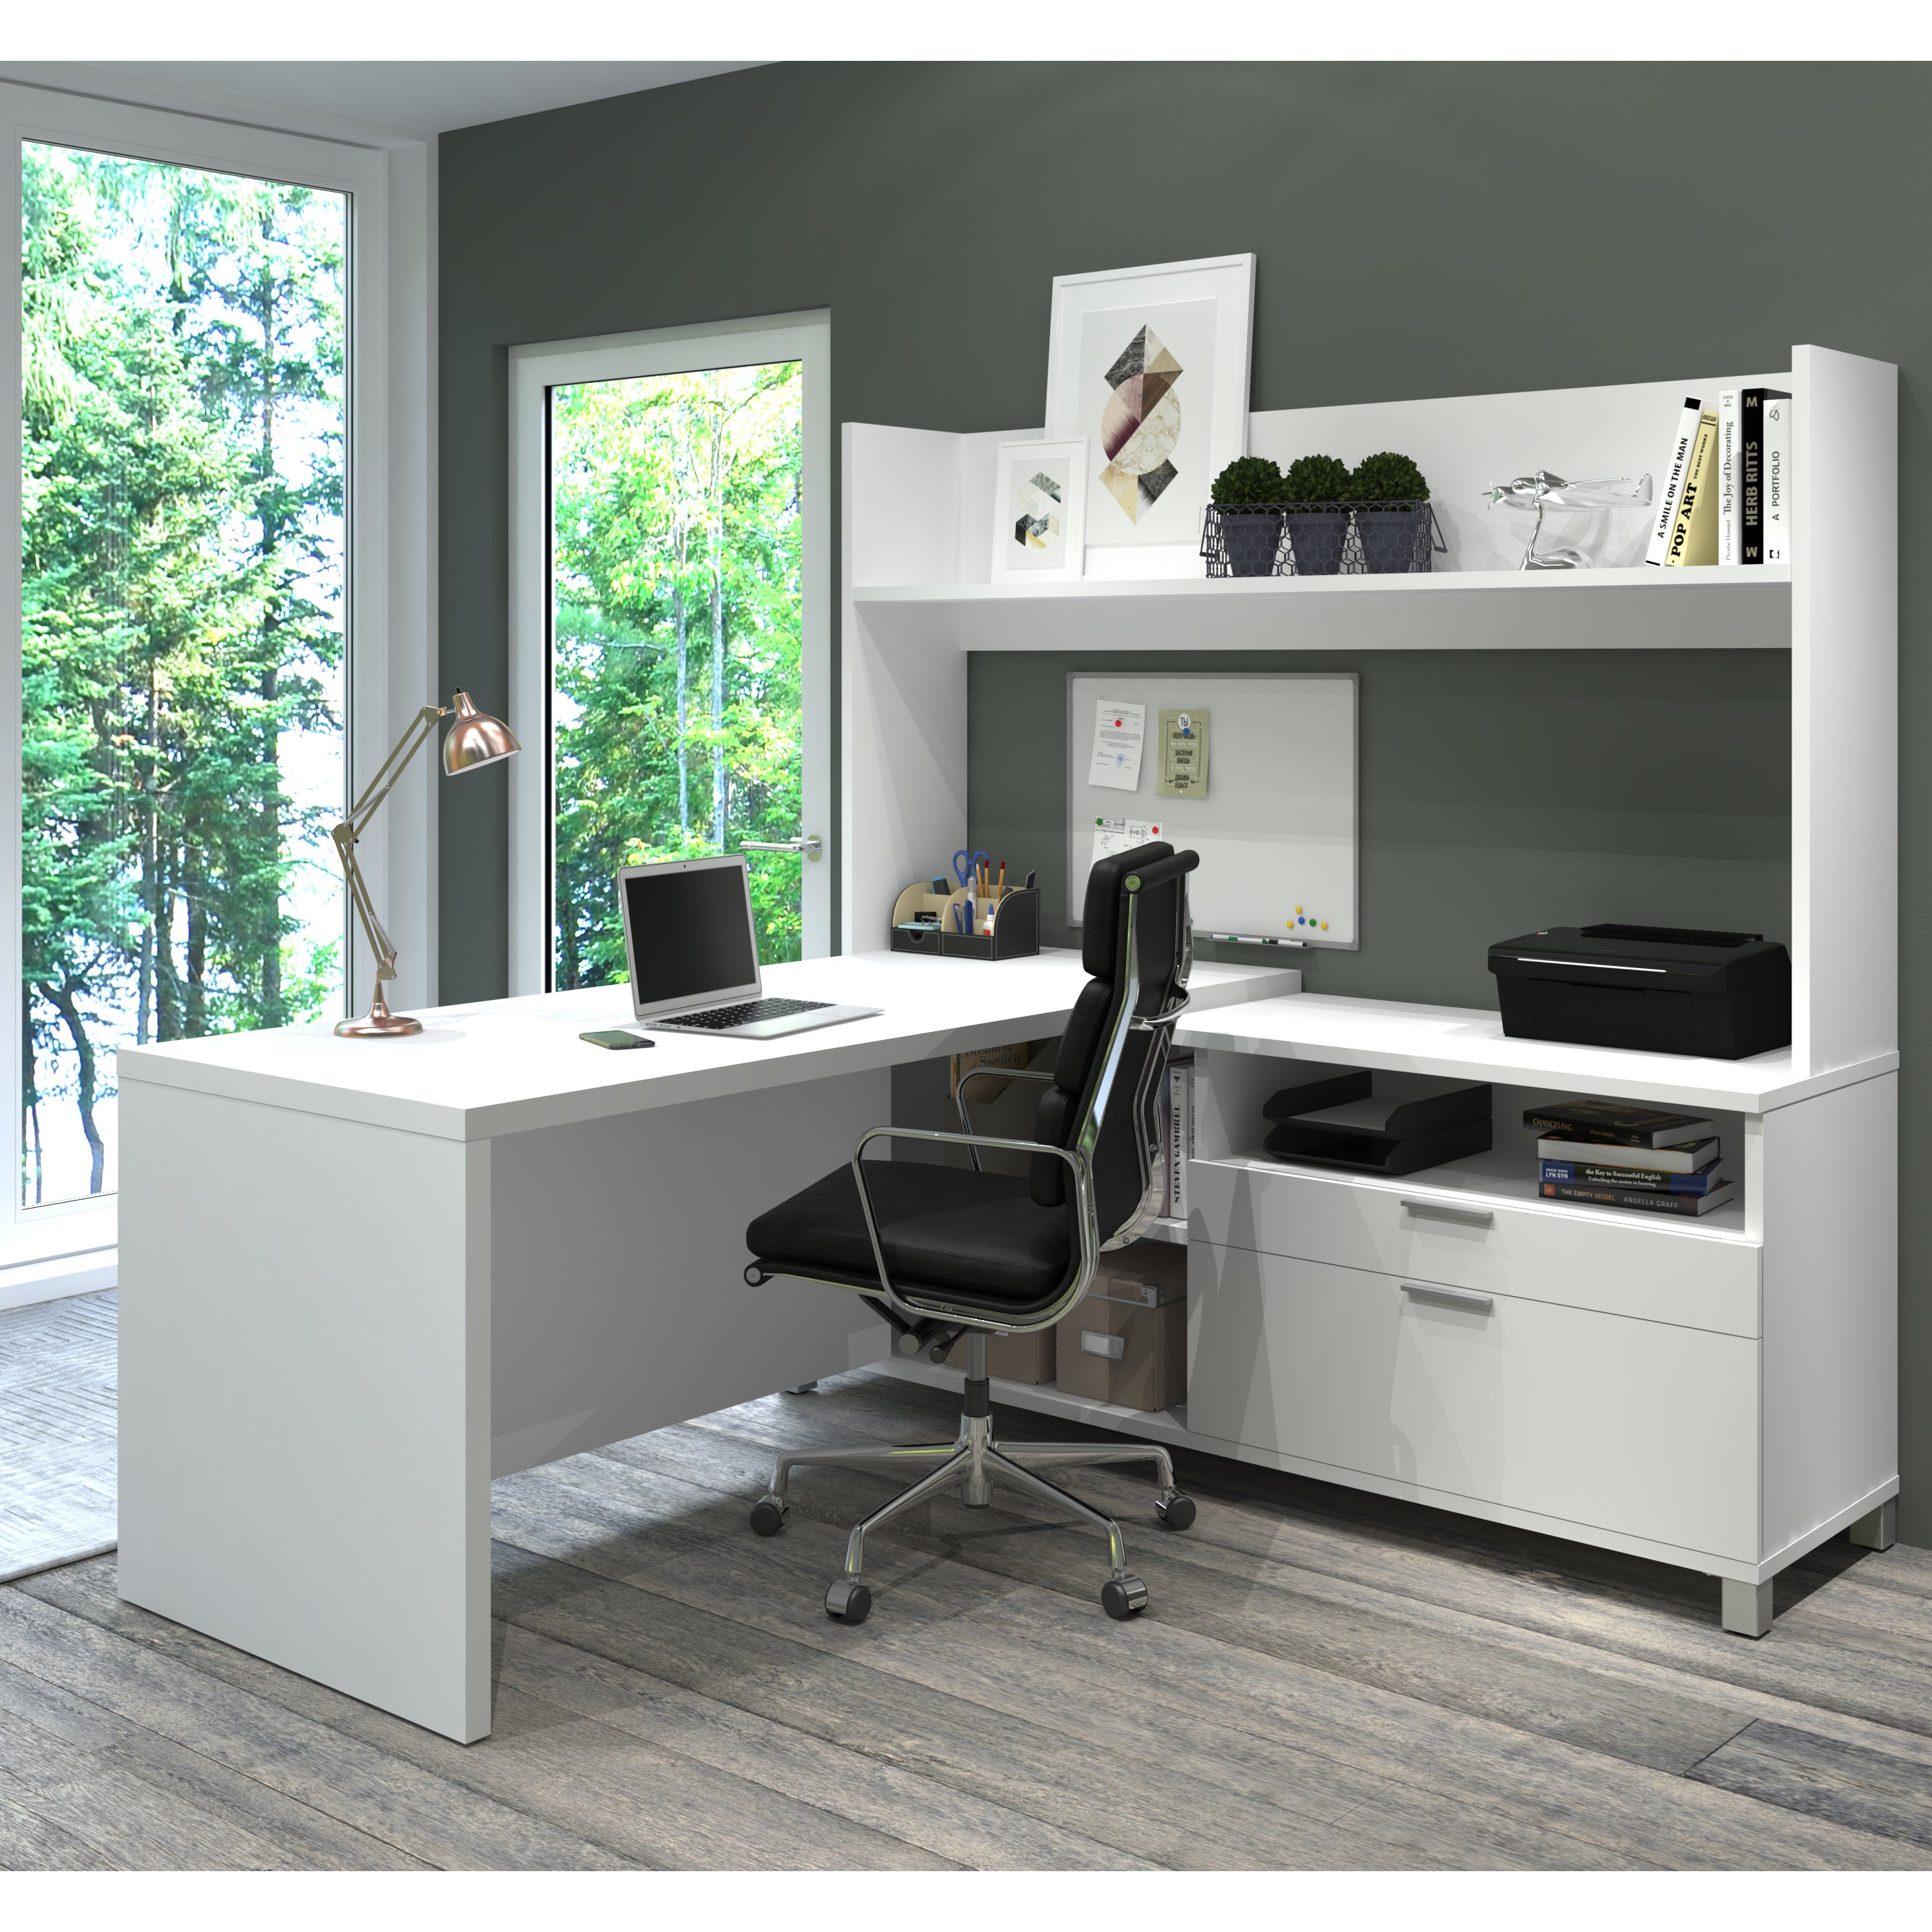 Shop Pro Linea L Desk with Open hutch Free Shipping Today